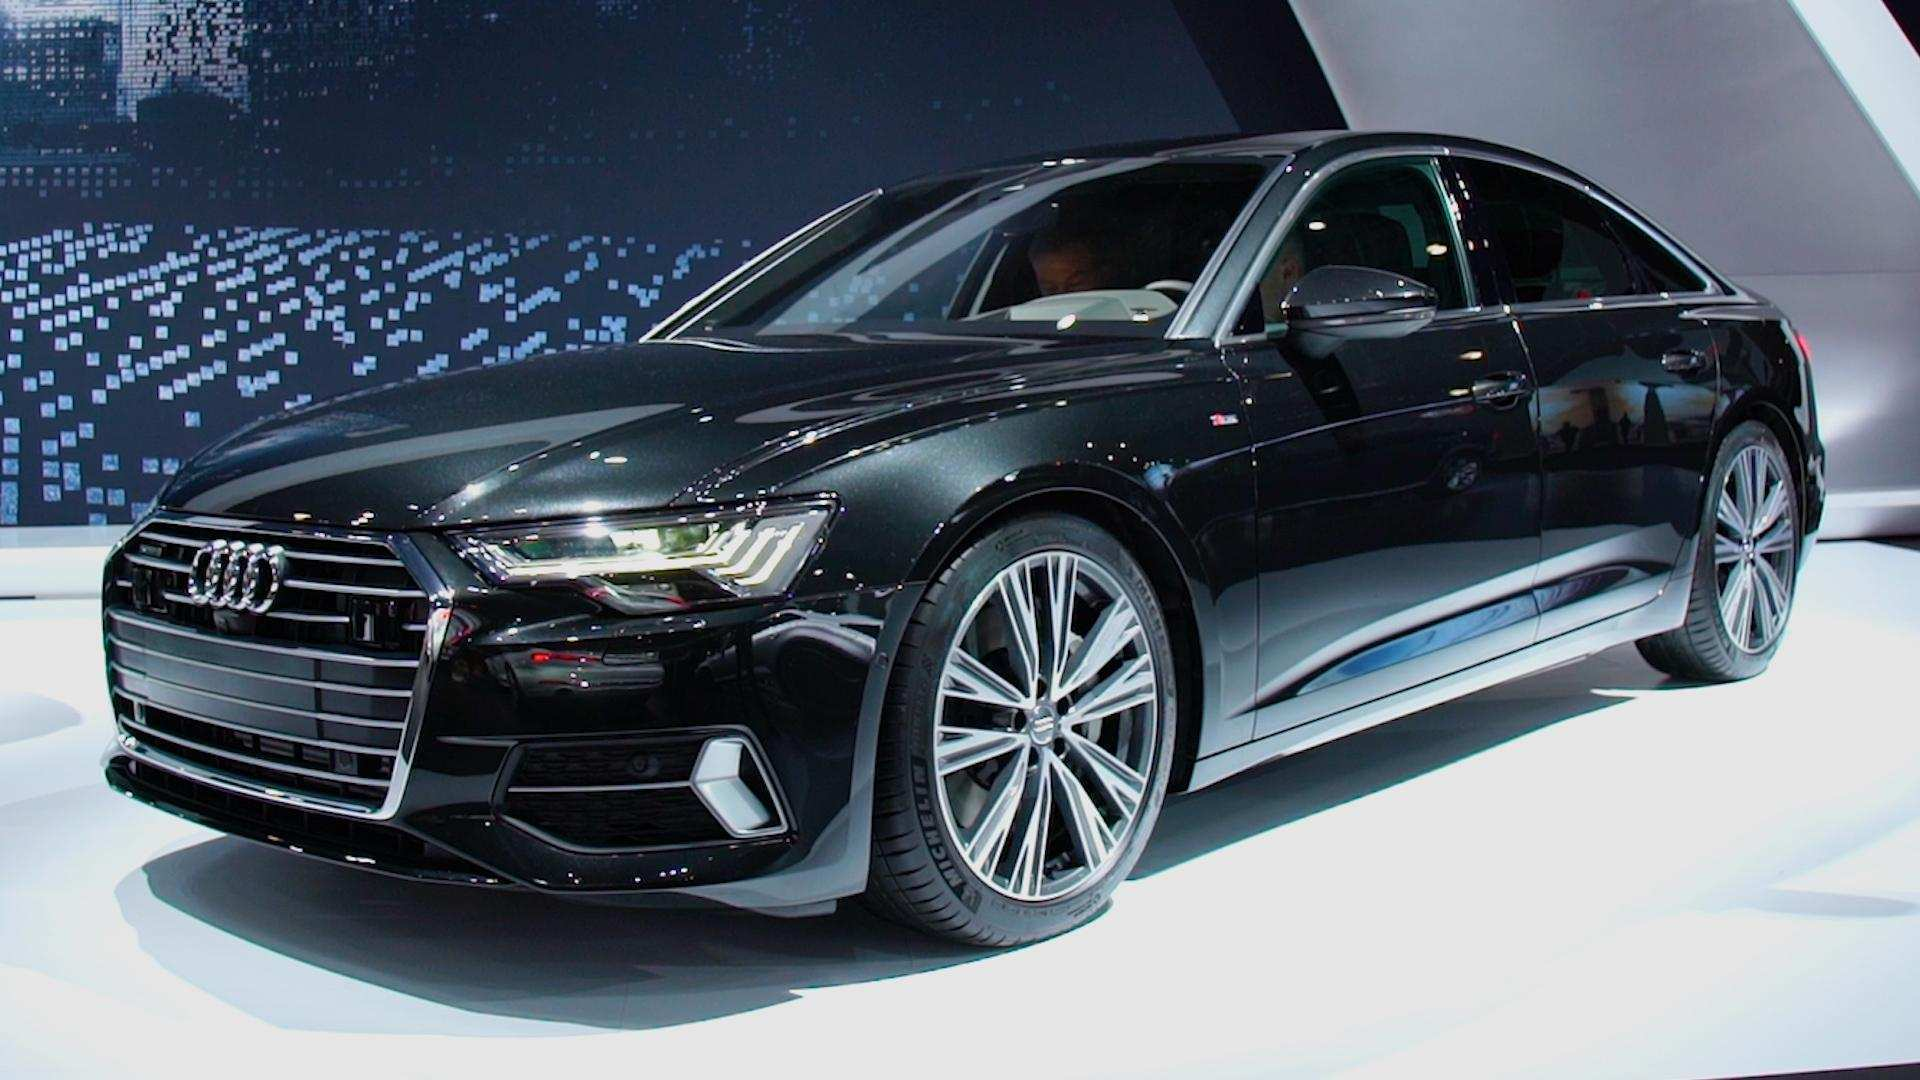 48 New The Modelli Audi 2019 New Review Style by The Modelli Audi 2019 New Review